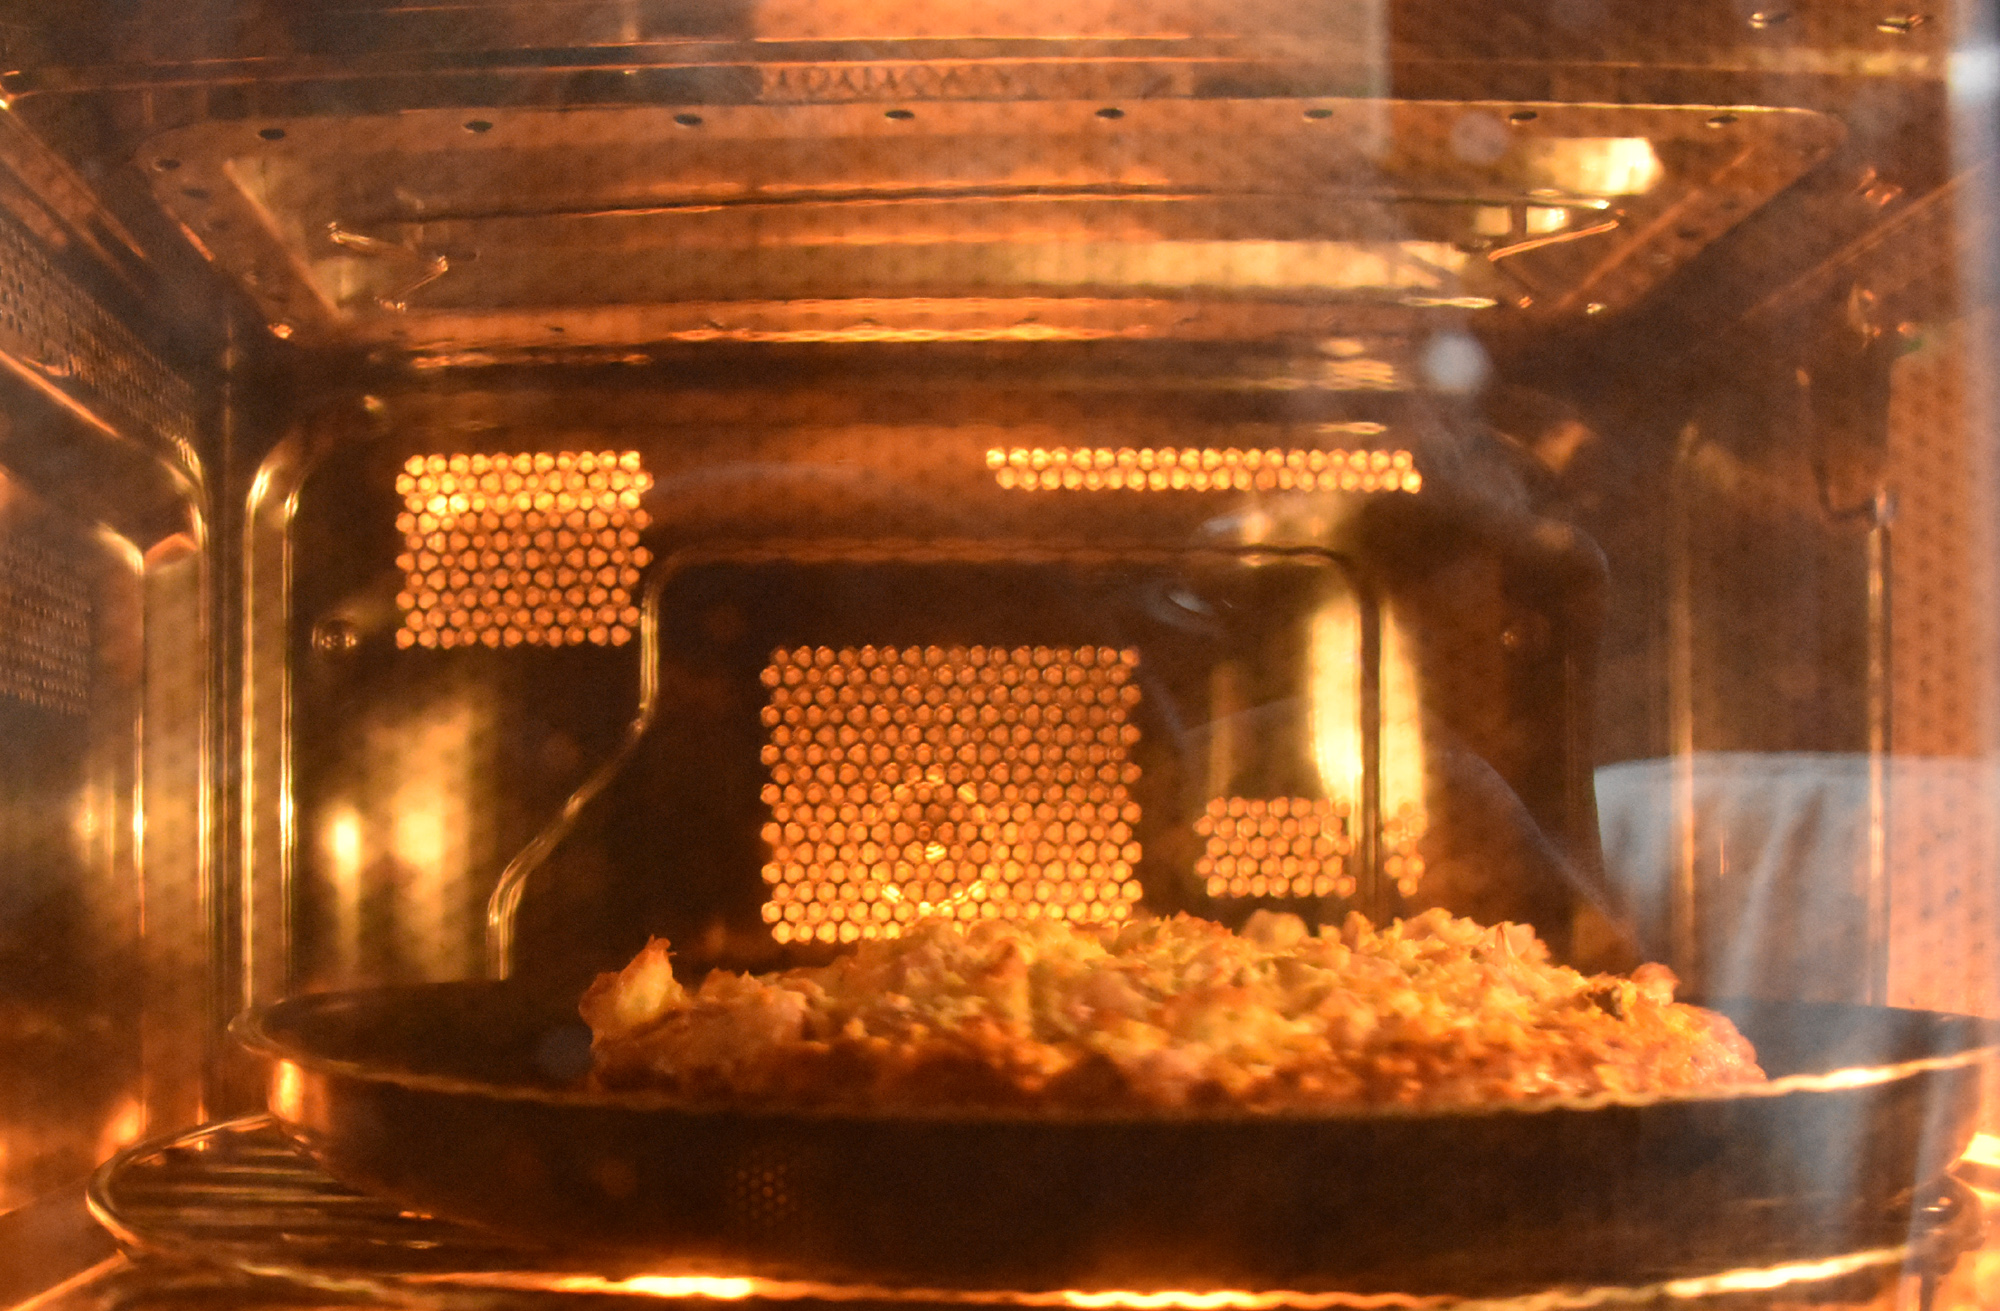 Captured a pizza being baked inside an oven